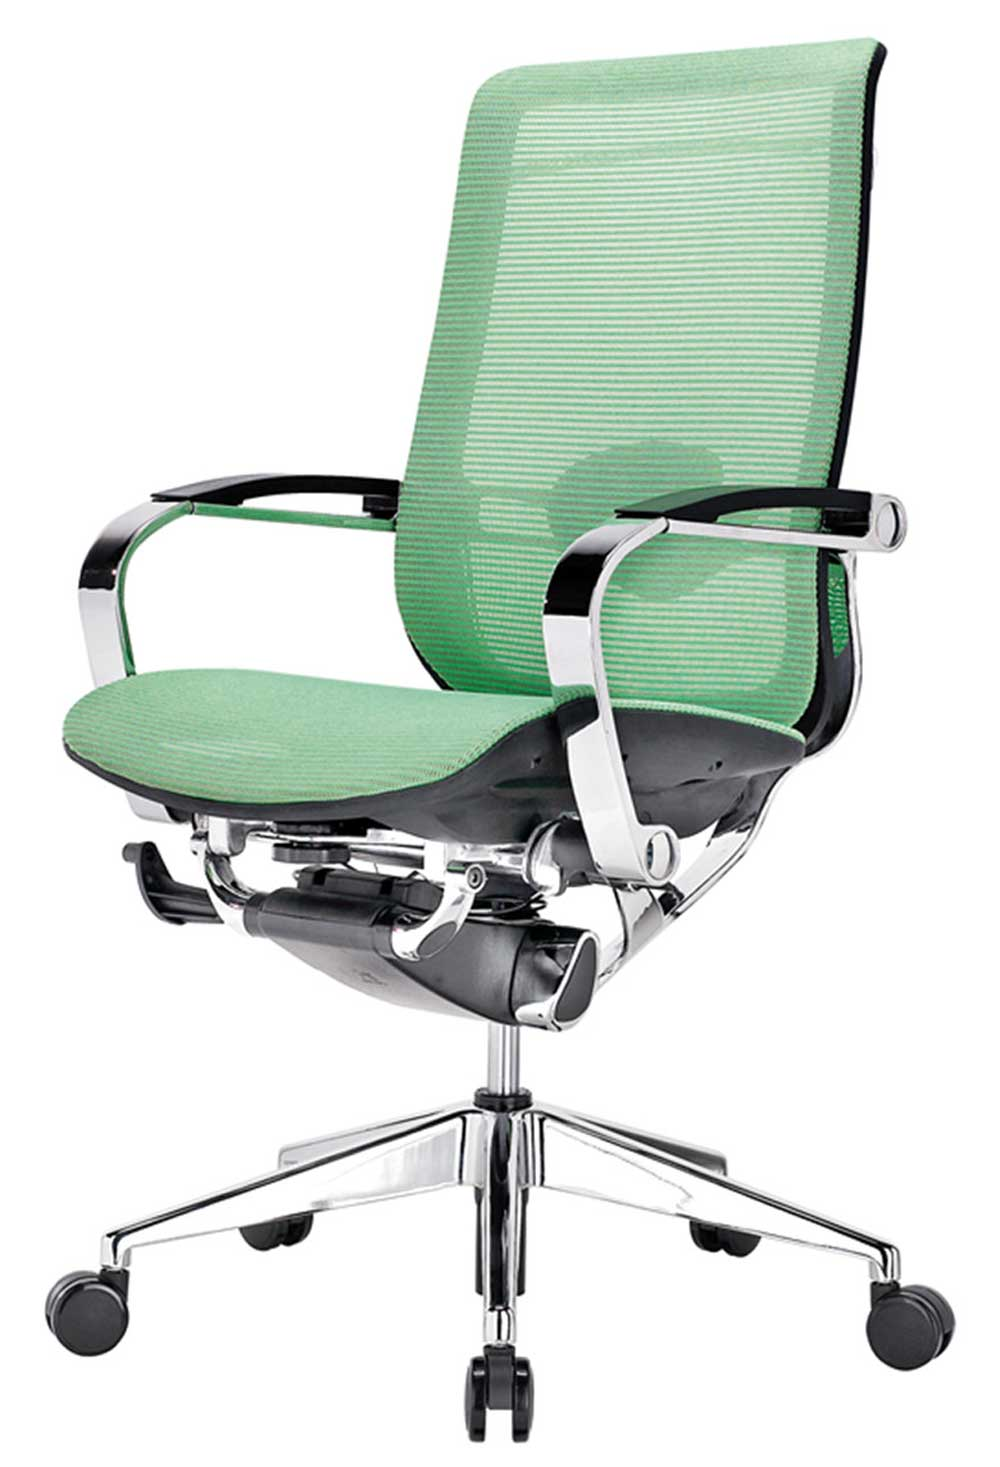 Lime green mesh ergonomic home office chairs